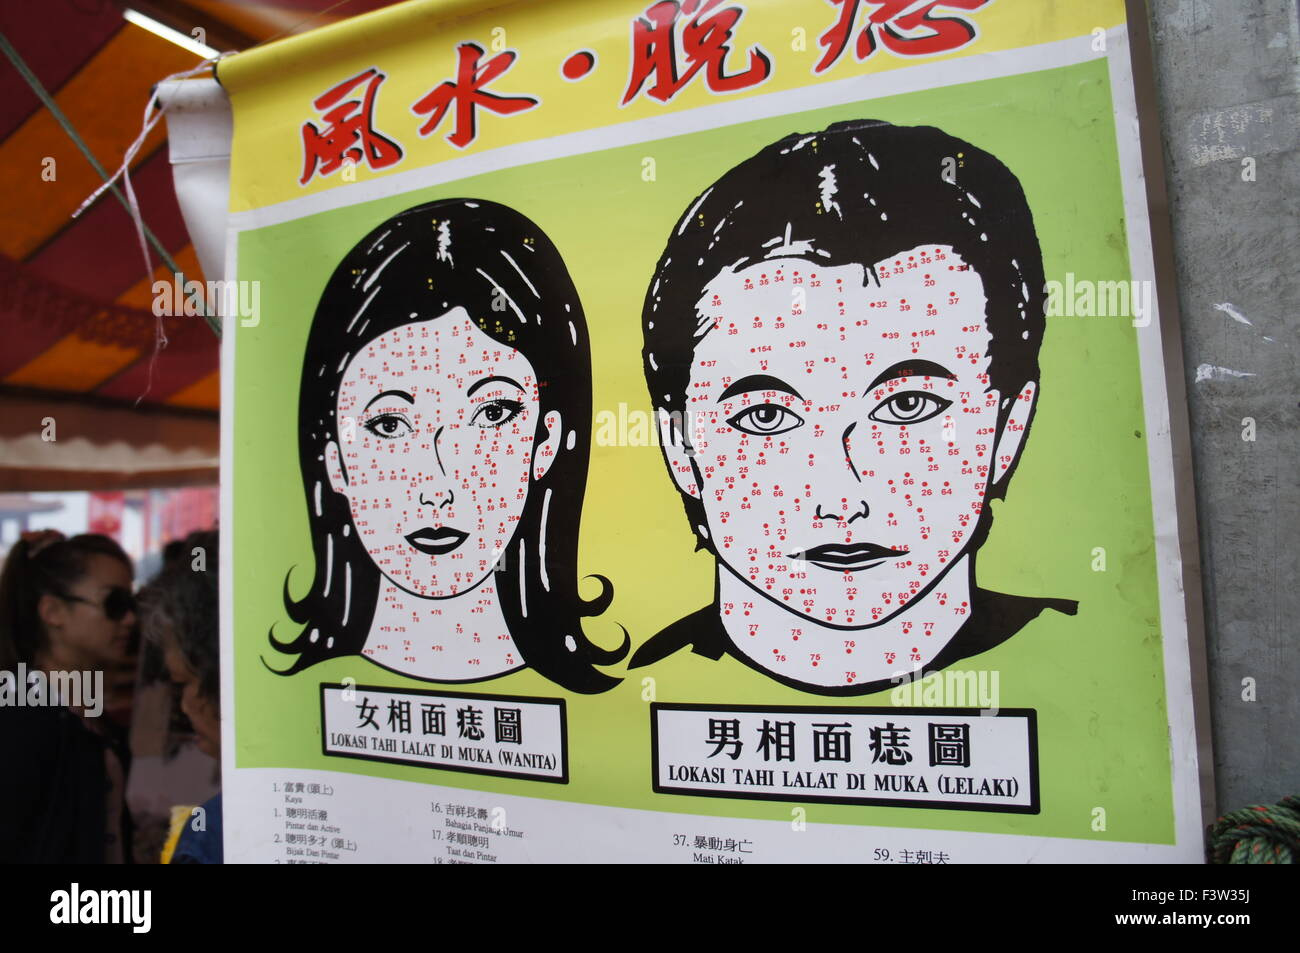 face fortune telling using mole locations - Stock Image